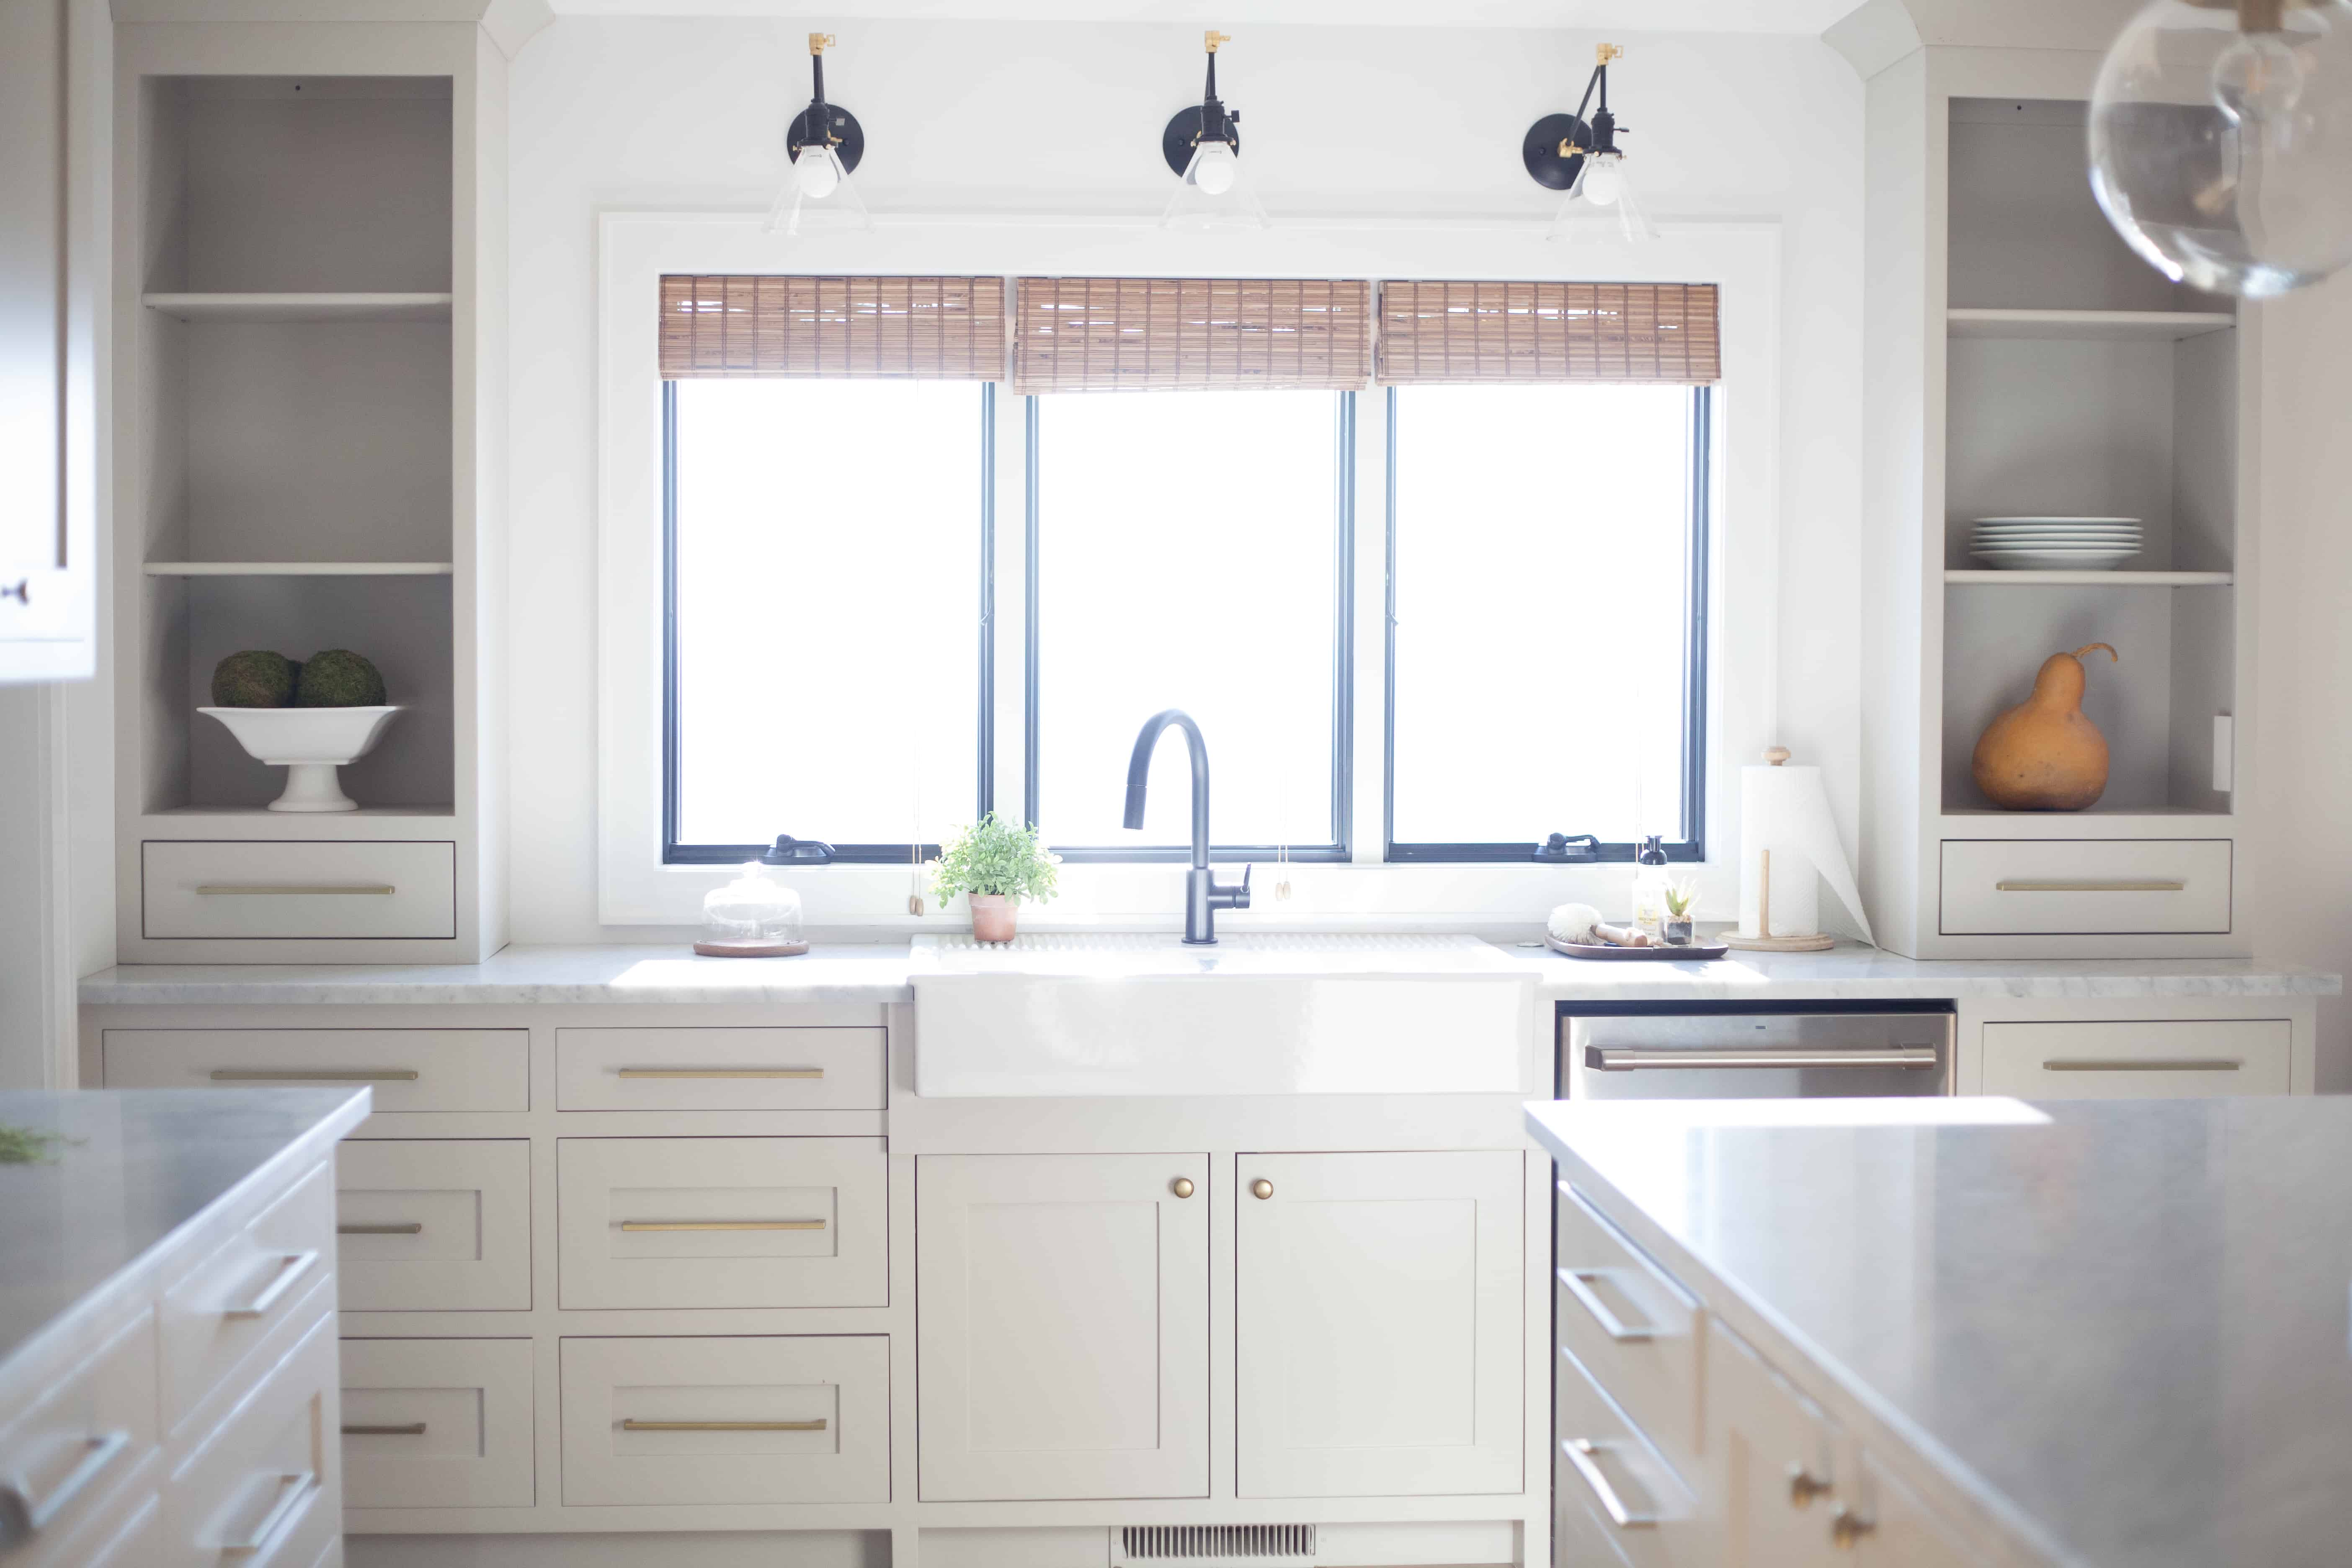 Farmhouse sink with black faucet. Kitchen window with a view. Black ...